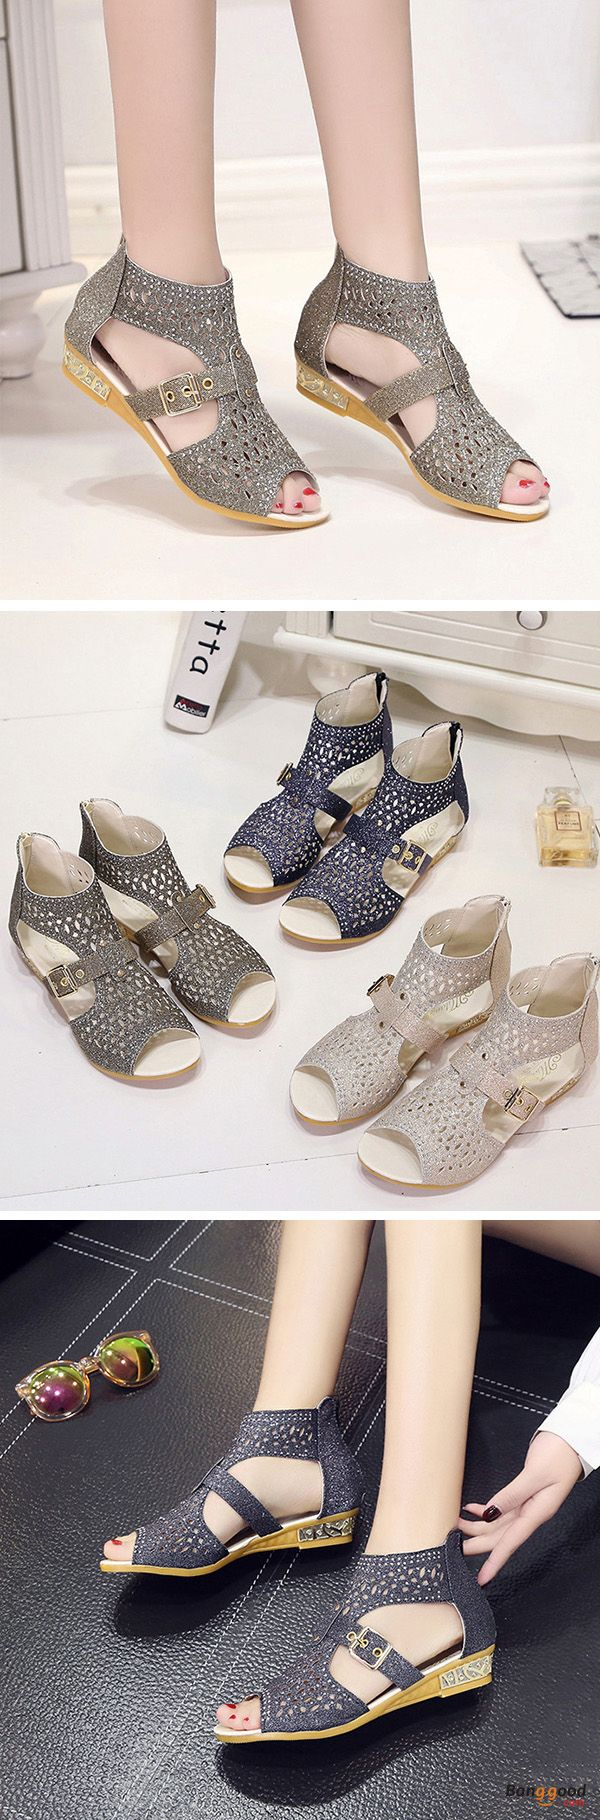 US$20.89 + Free shipping. Size(US): 5~9. Color: Black, Gold, Beige. Upper Material: PU. Fall in love with casual style! Summer Sandals, Women Flat Sandals, shoes flats, shoes sandals, Casual, Outdoor, Comfortable.